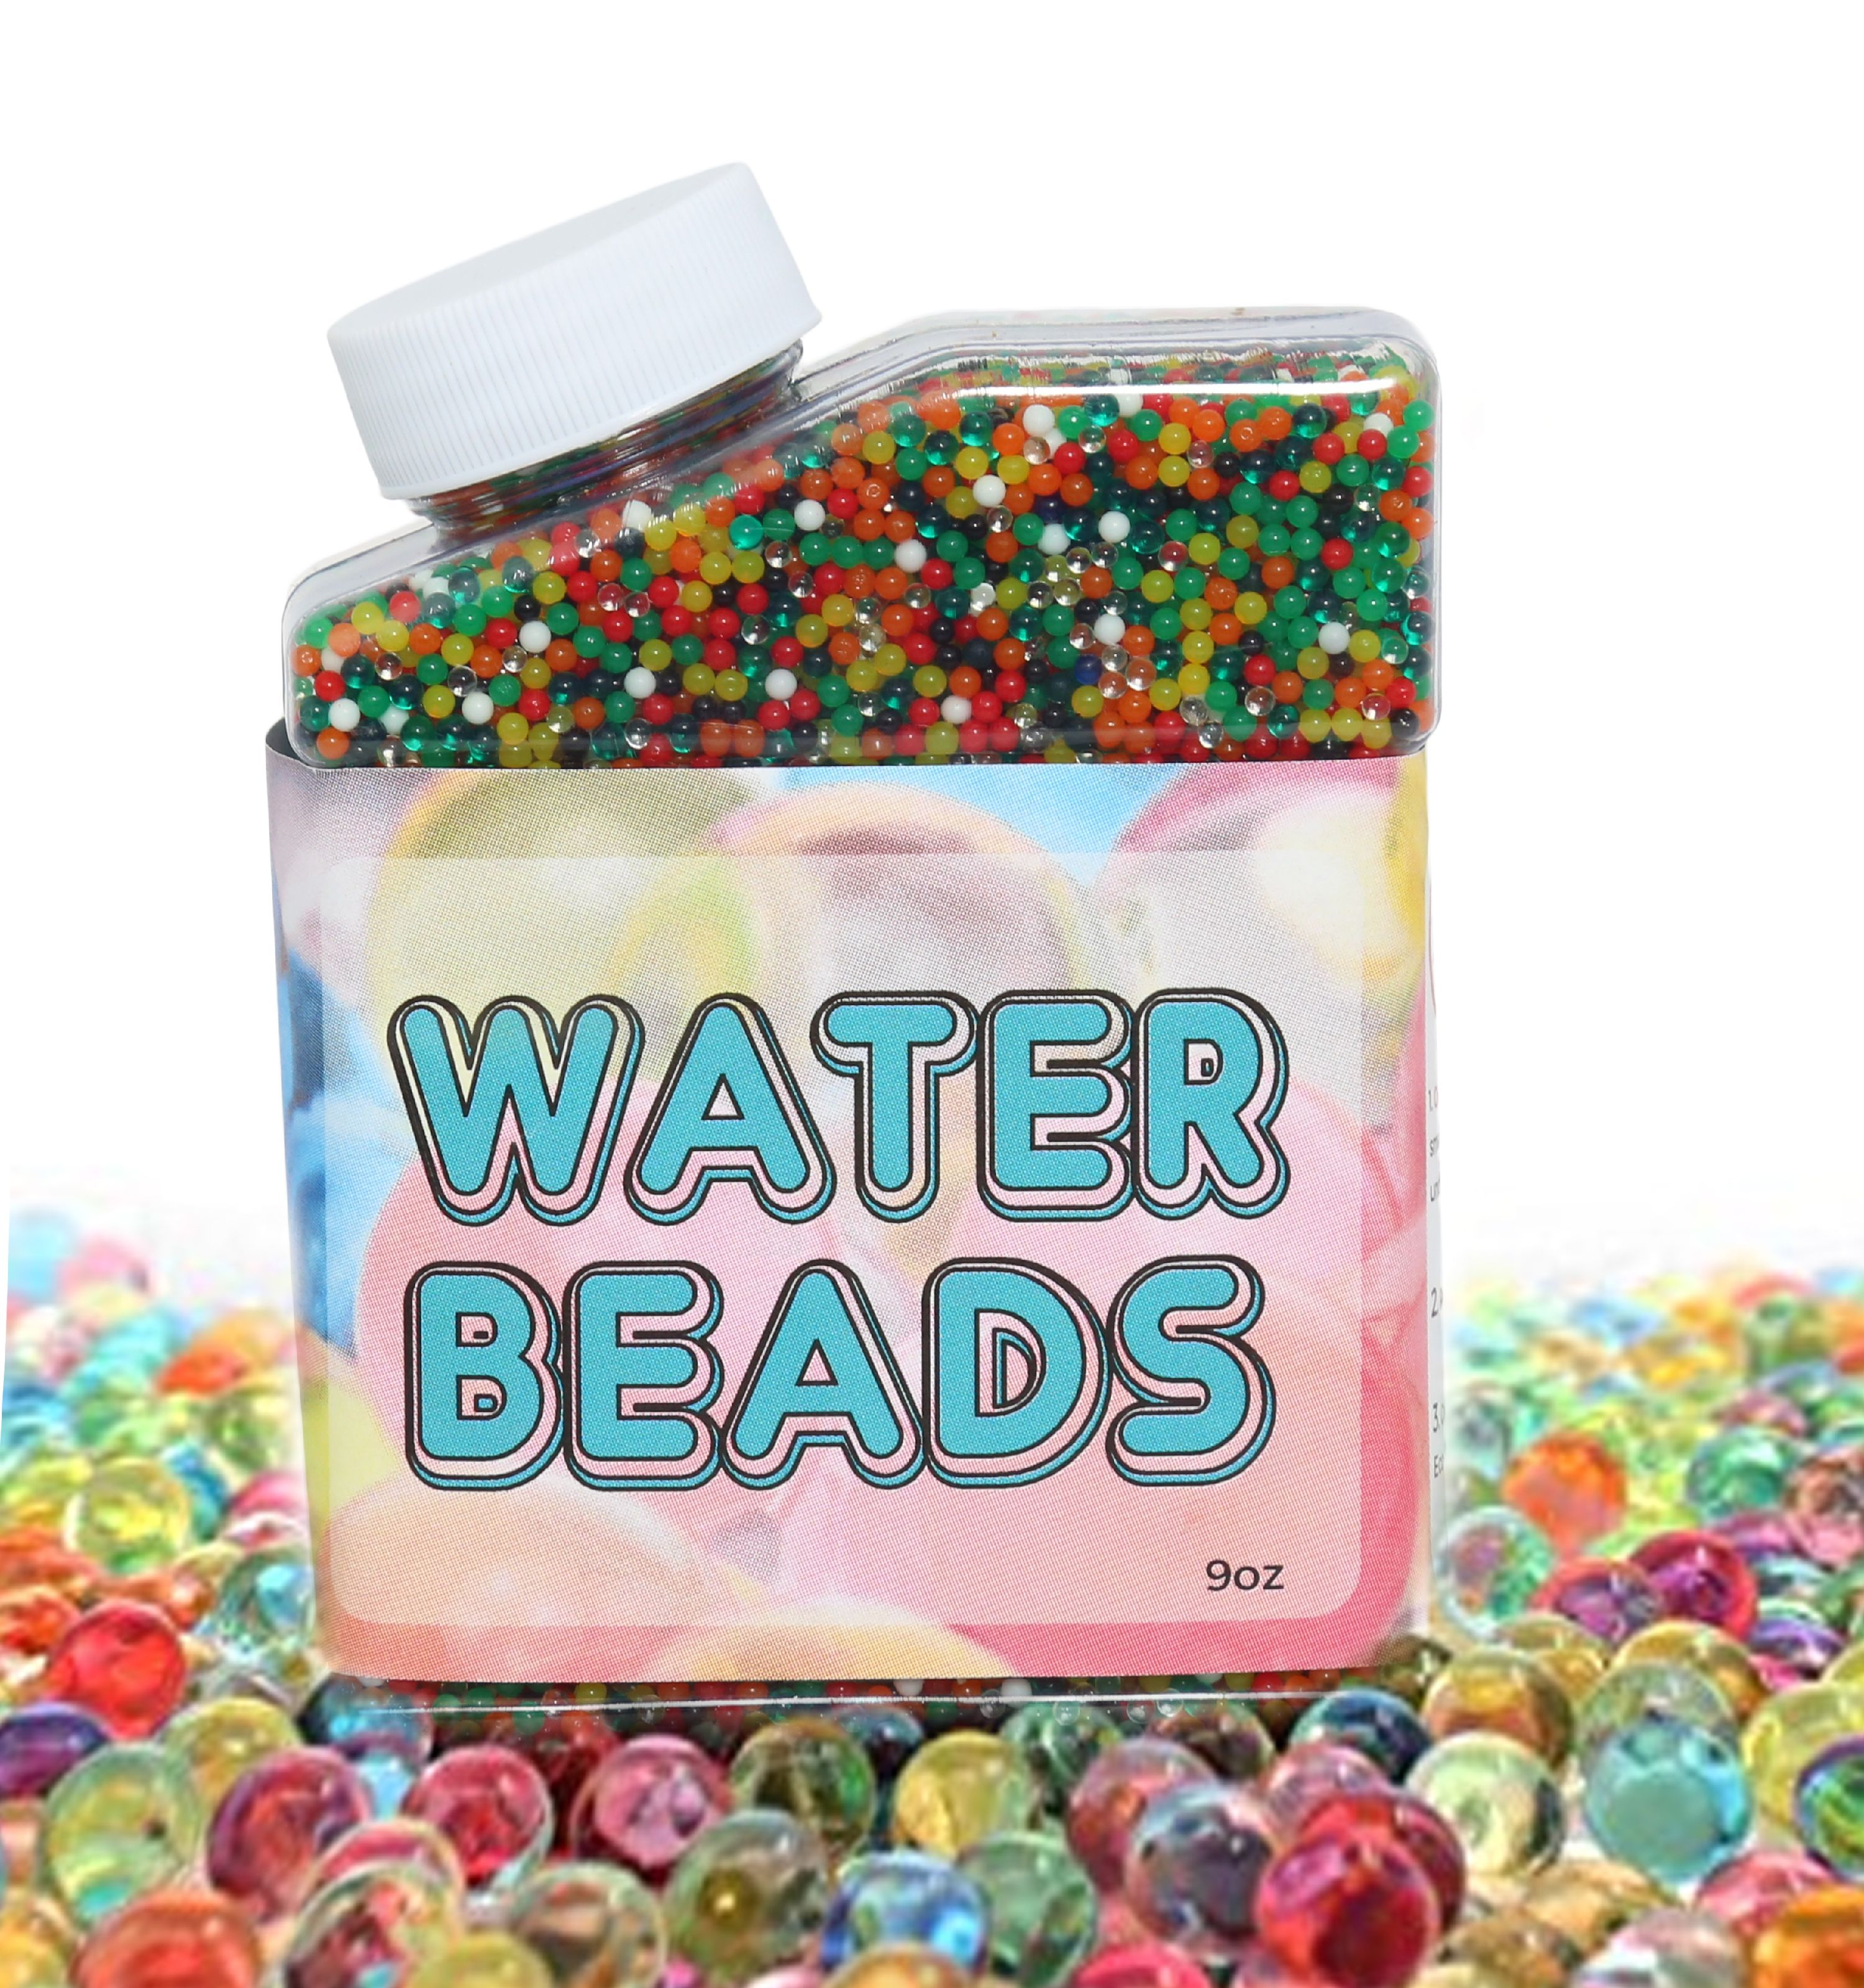 Water Beads Value Pack (35,000 beads) Rainbow Mix Jelly Water Growing Balls for Kids Educational Tactile Sensory Toys, Vases, Plants, and Home Decoration